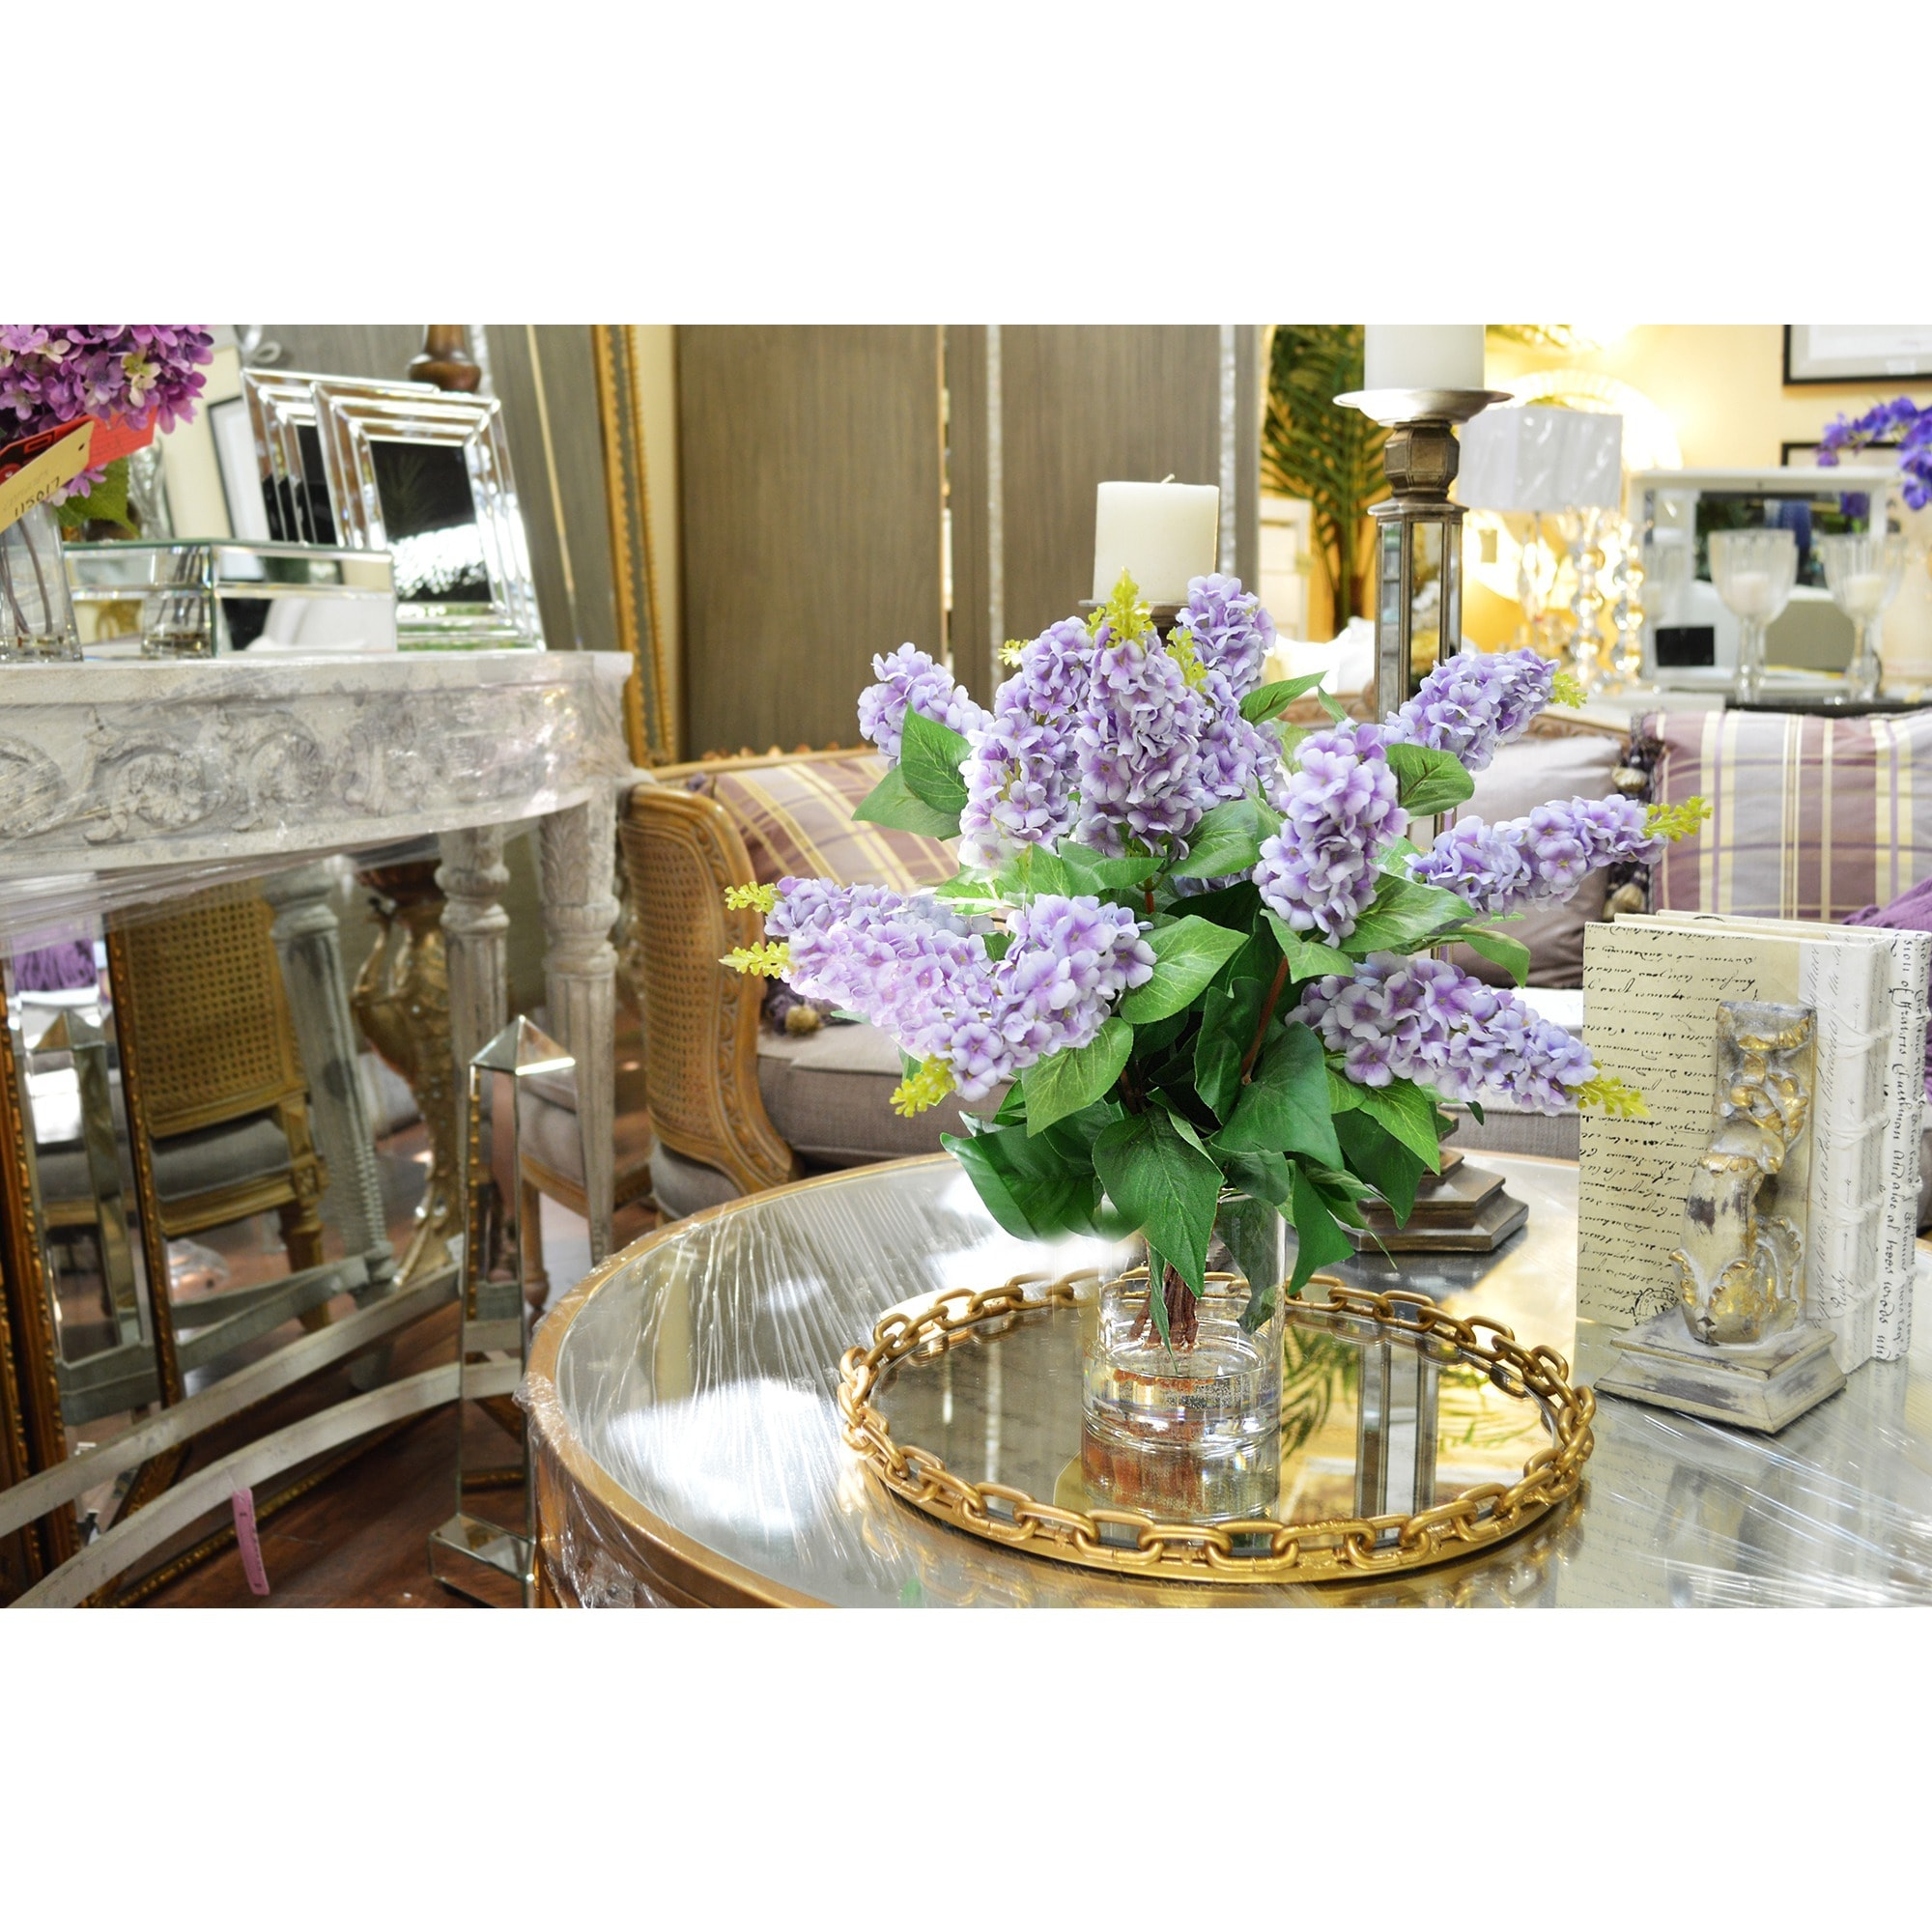 Shop creative displays lavender lilac silk flowers in acrylic water shop creative displays lavender lilac silk flowers in acrylic water filled glass vase free shipping today overstock 9833310 mightylinksfo